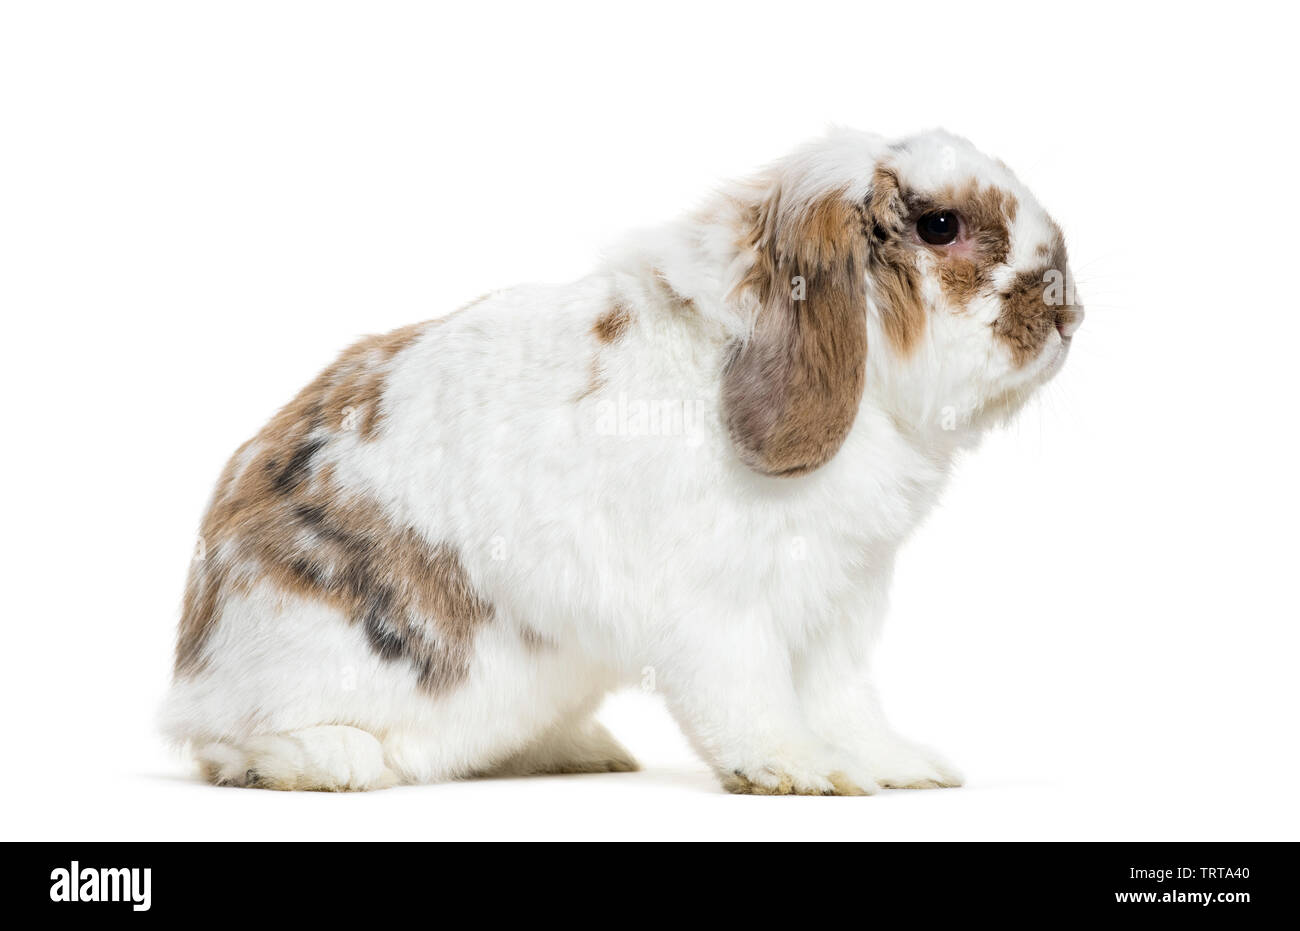 Holland Lop rabbit sitting in front of white background - Stock Image